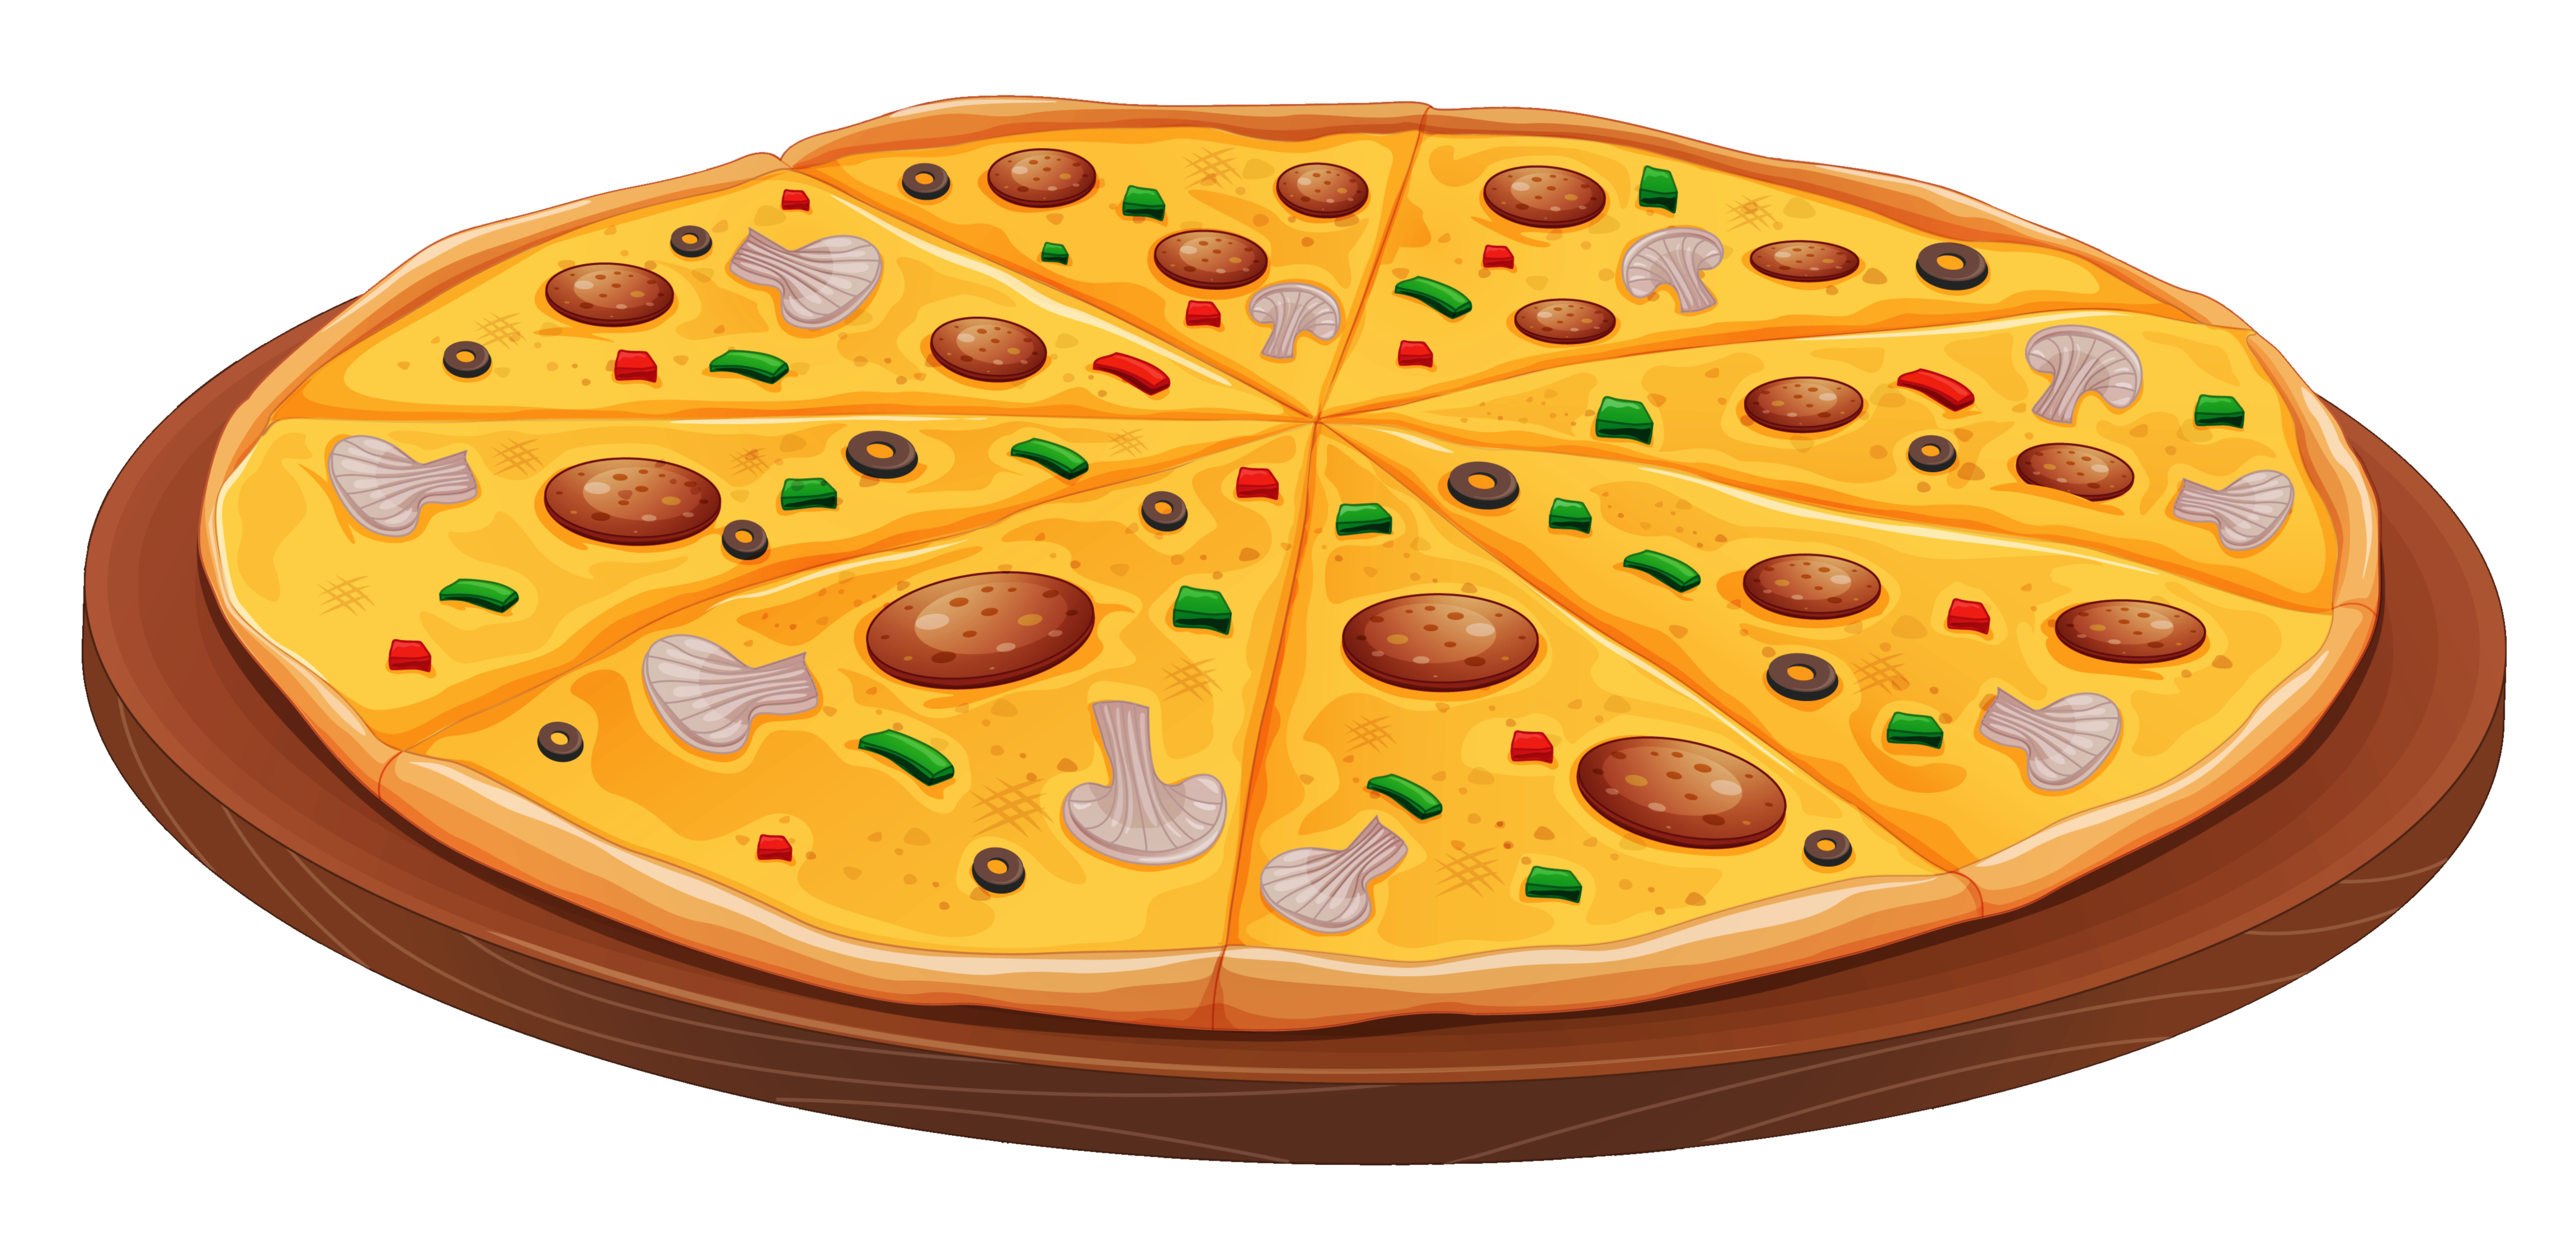 Free Pizza Cliparts, Download Free Clip Art, Free Clip Art.